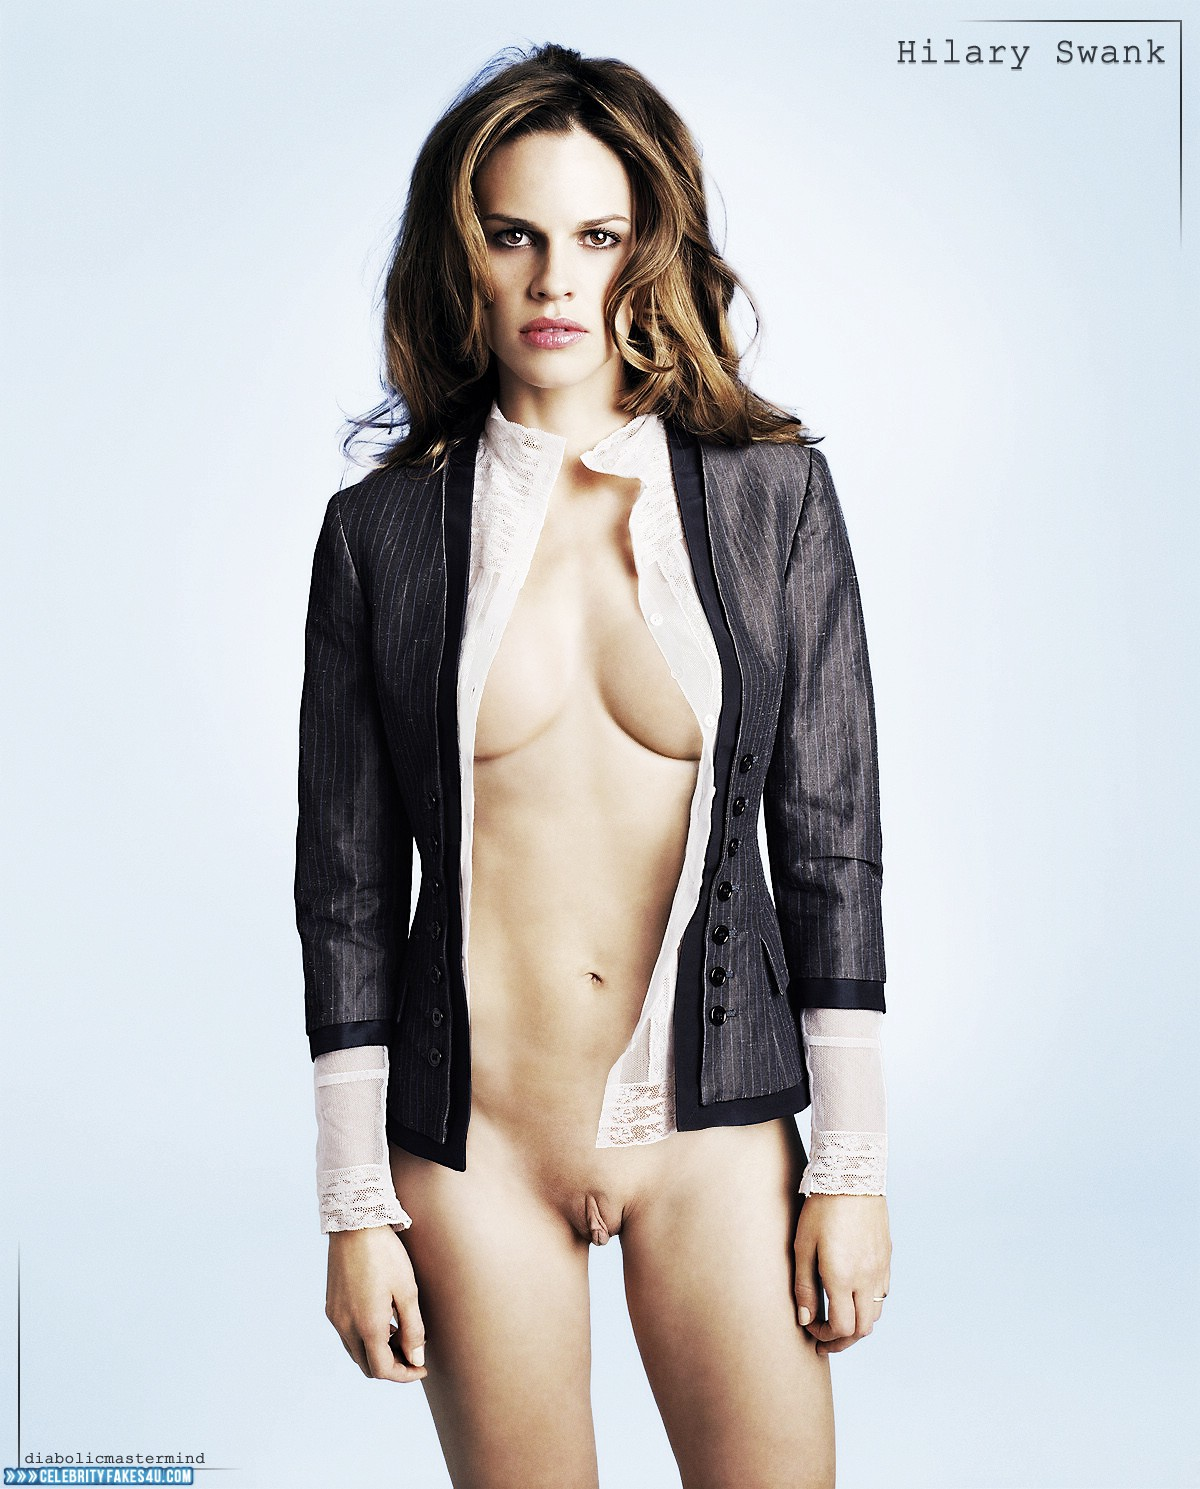 Fake nude images of hilary swank